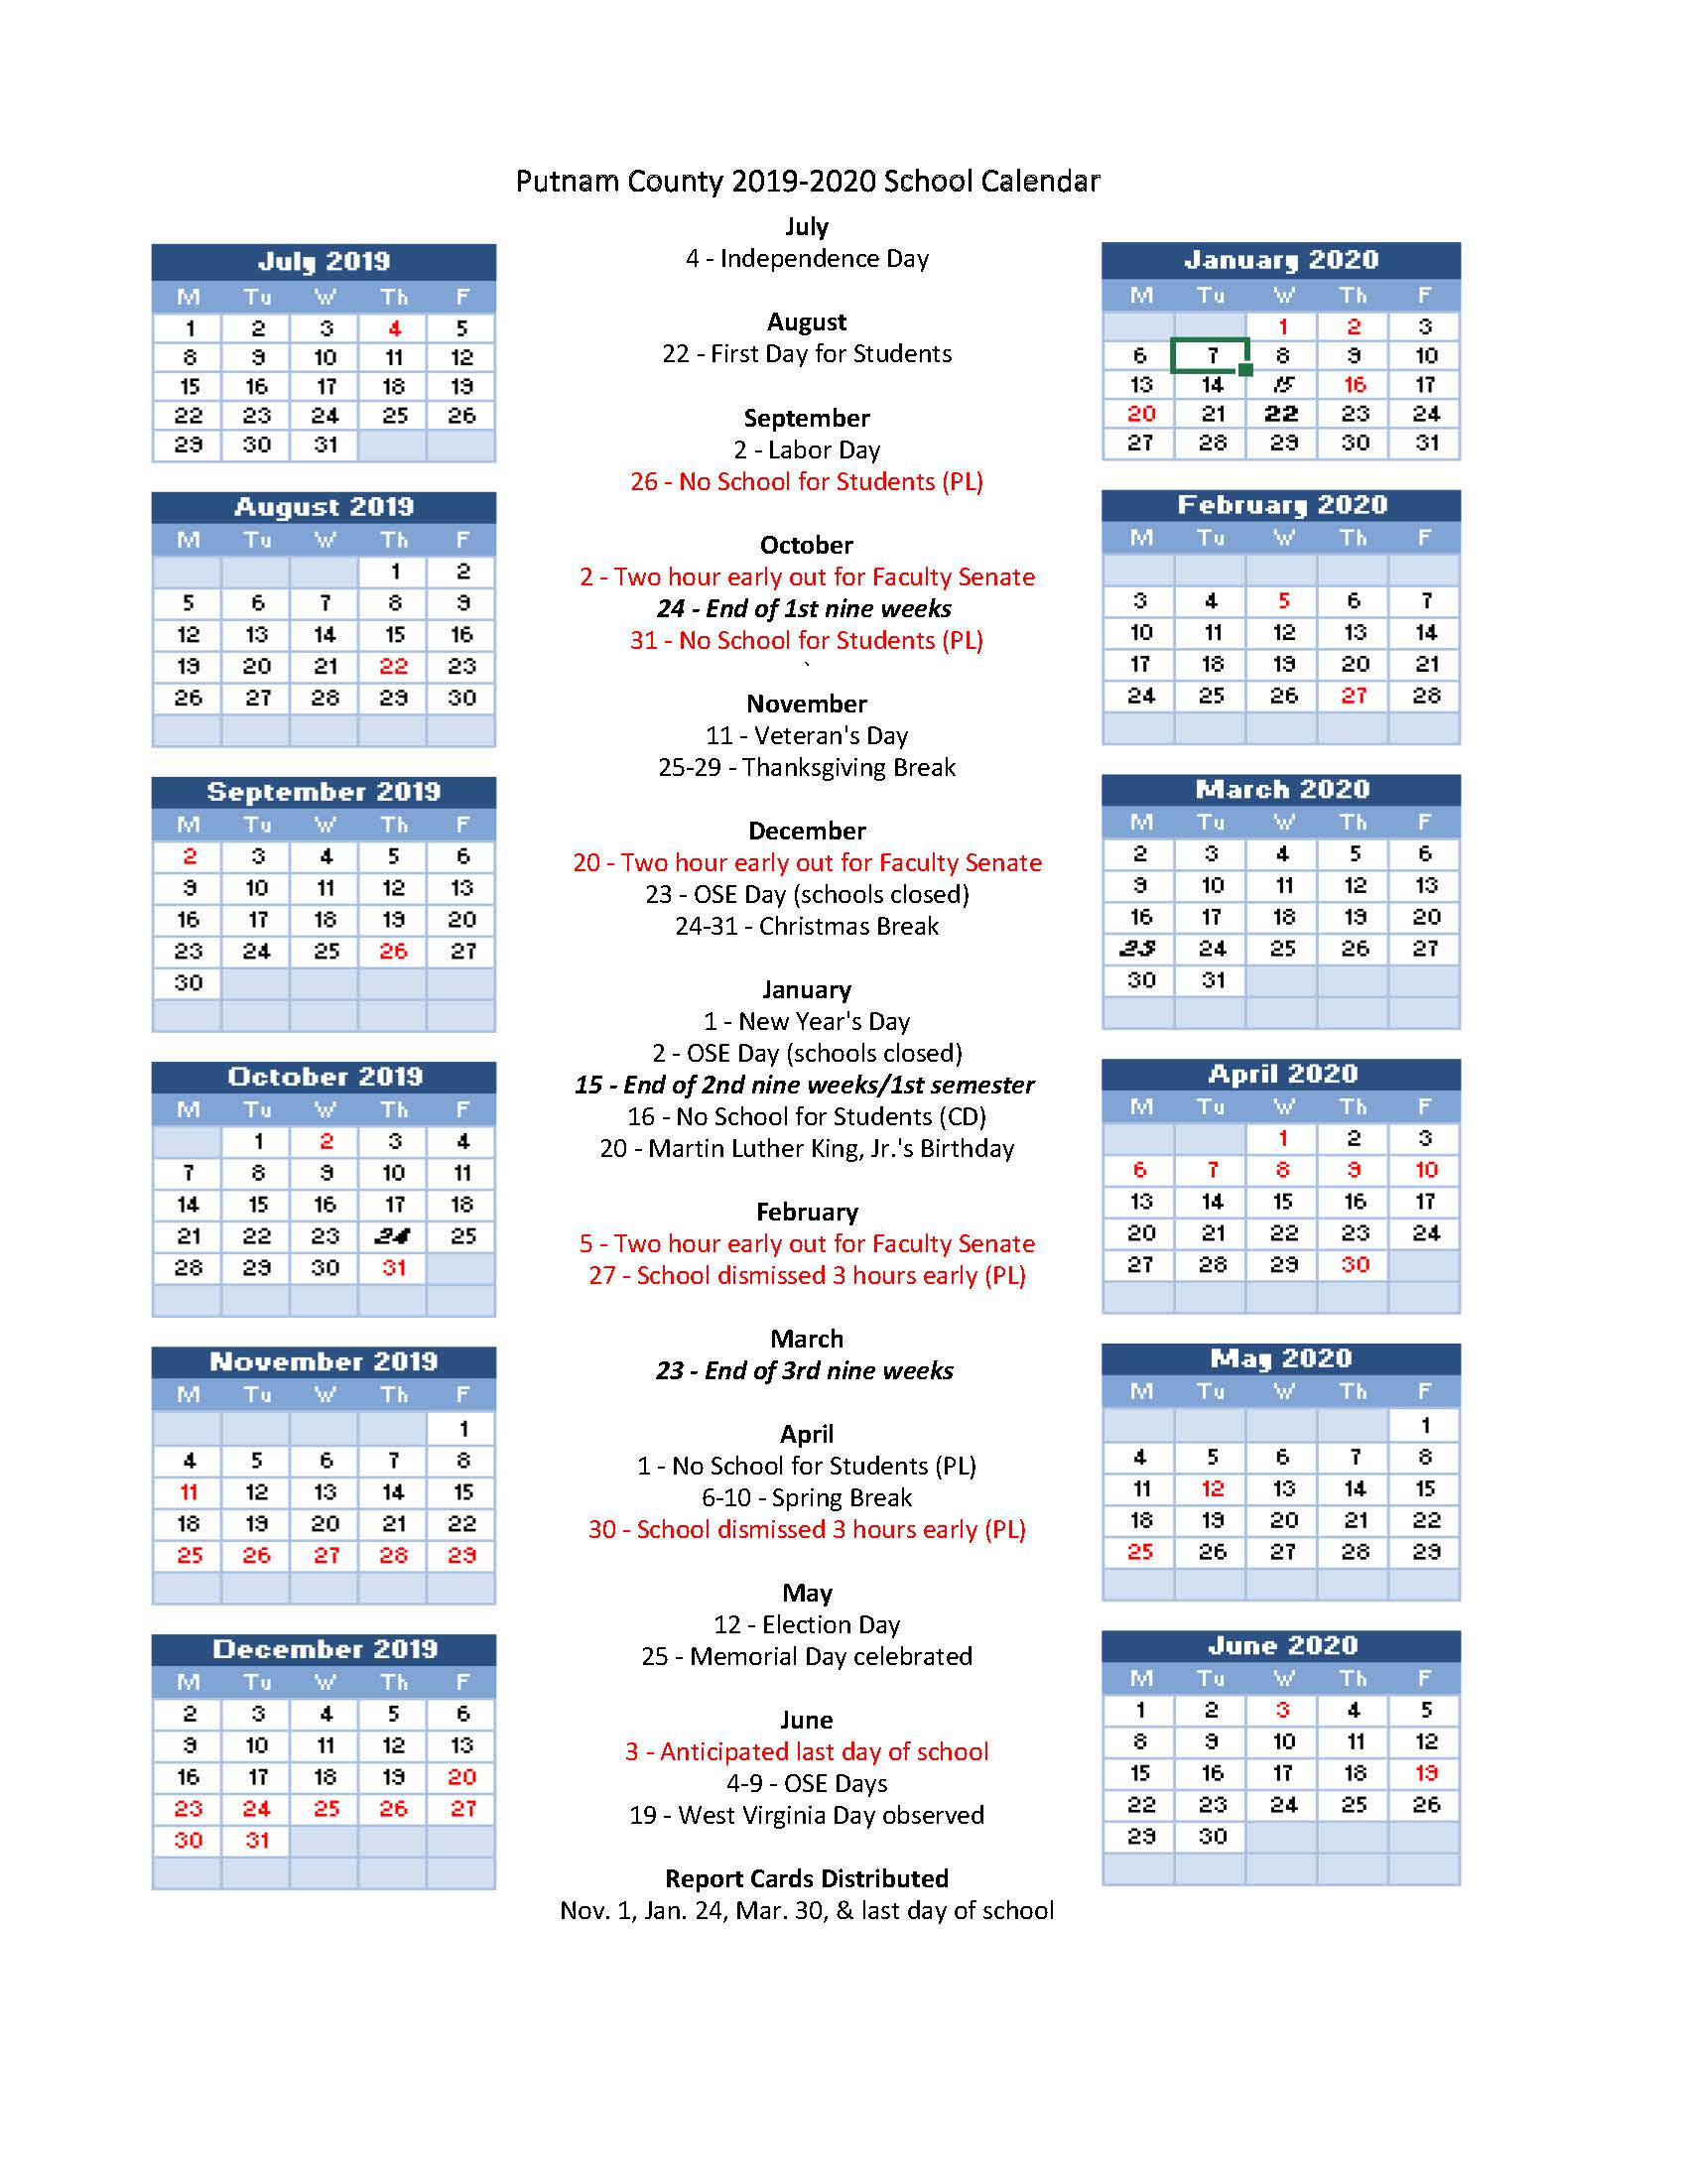 Pcs 2019-2020 School Calendar Highlights - Putnam County Schools within Virginia Tech Academic Calendar 2019 2020